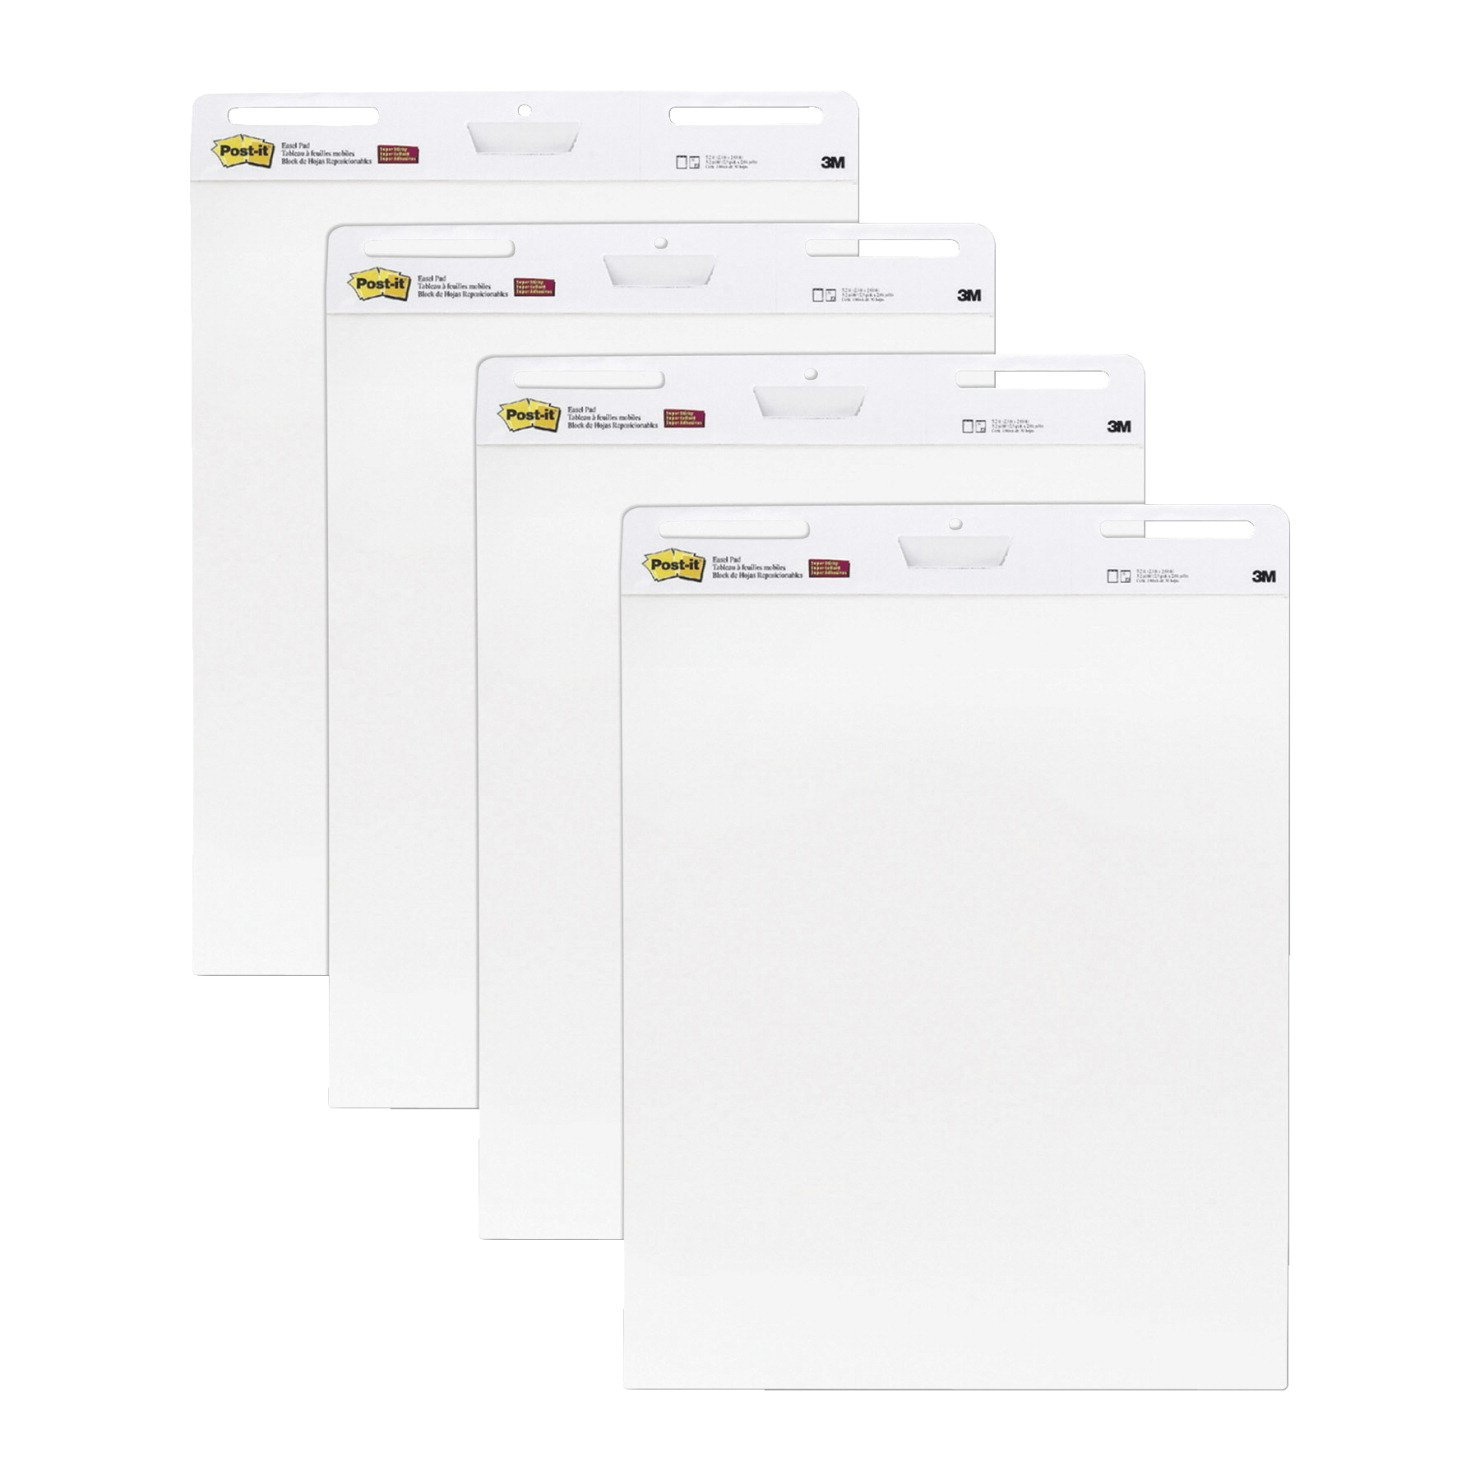 Post-It Self-Stick Easel Pad, 25 x 30 Inches, Unruled, White, 30 Sheets, Pack of 4 by Post-it